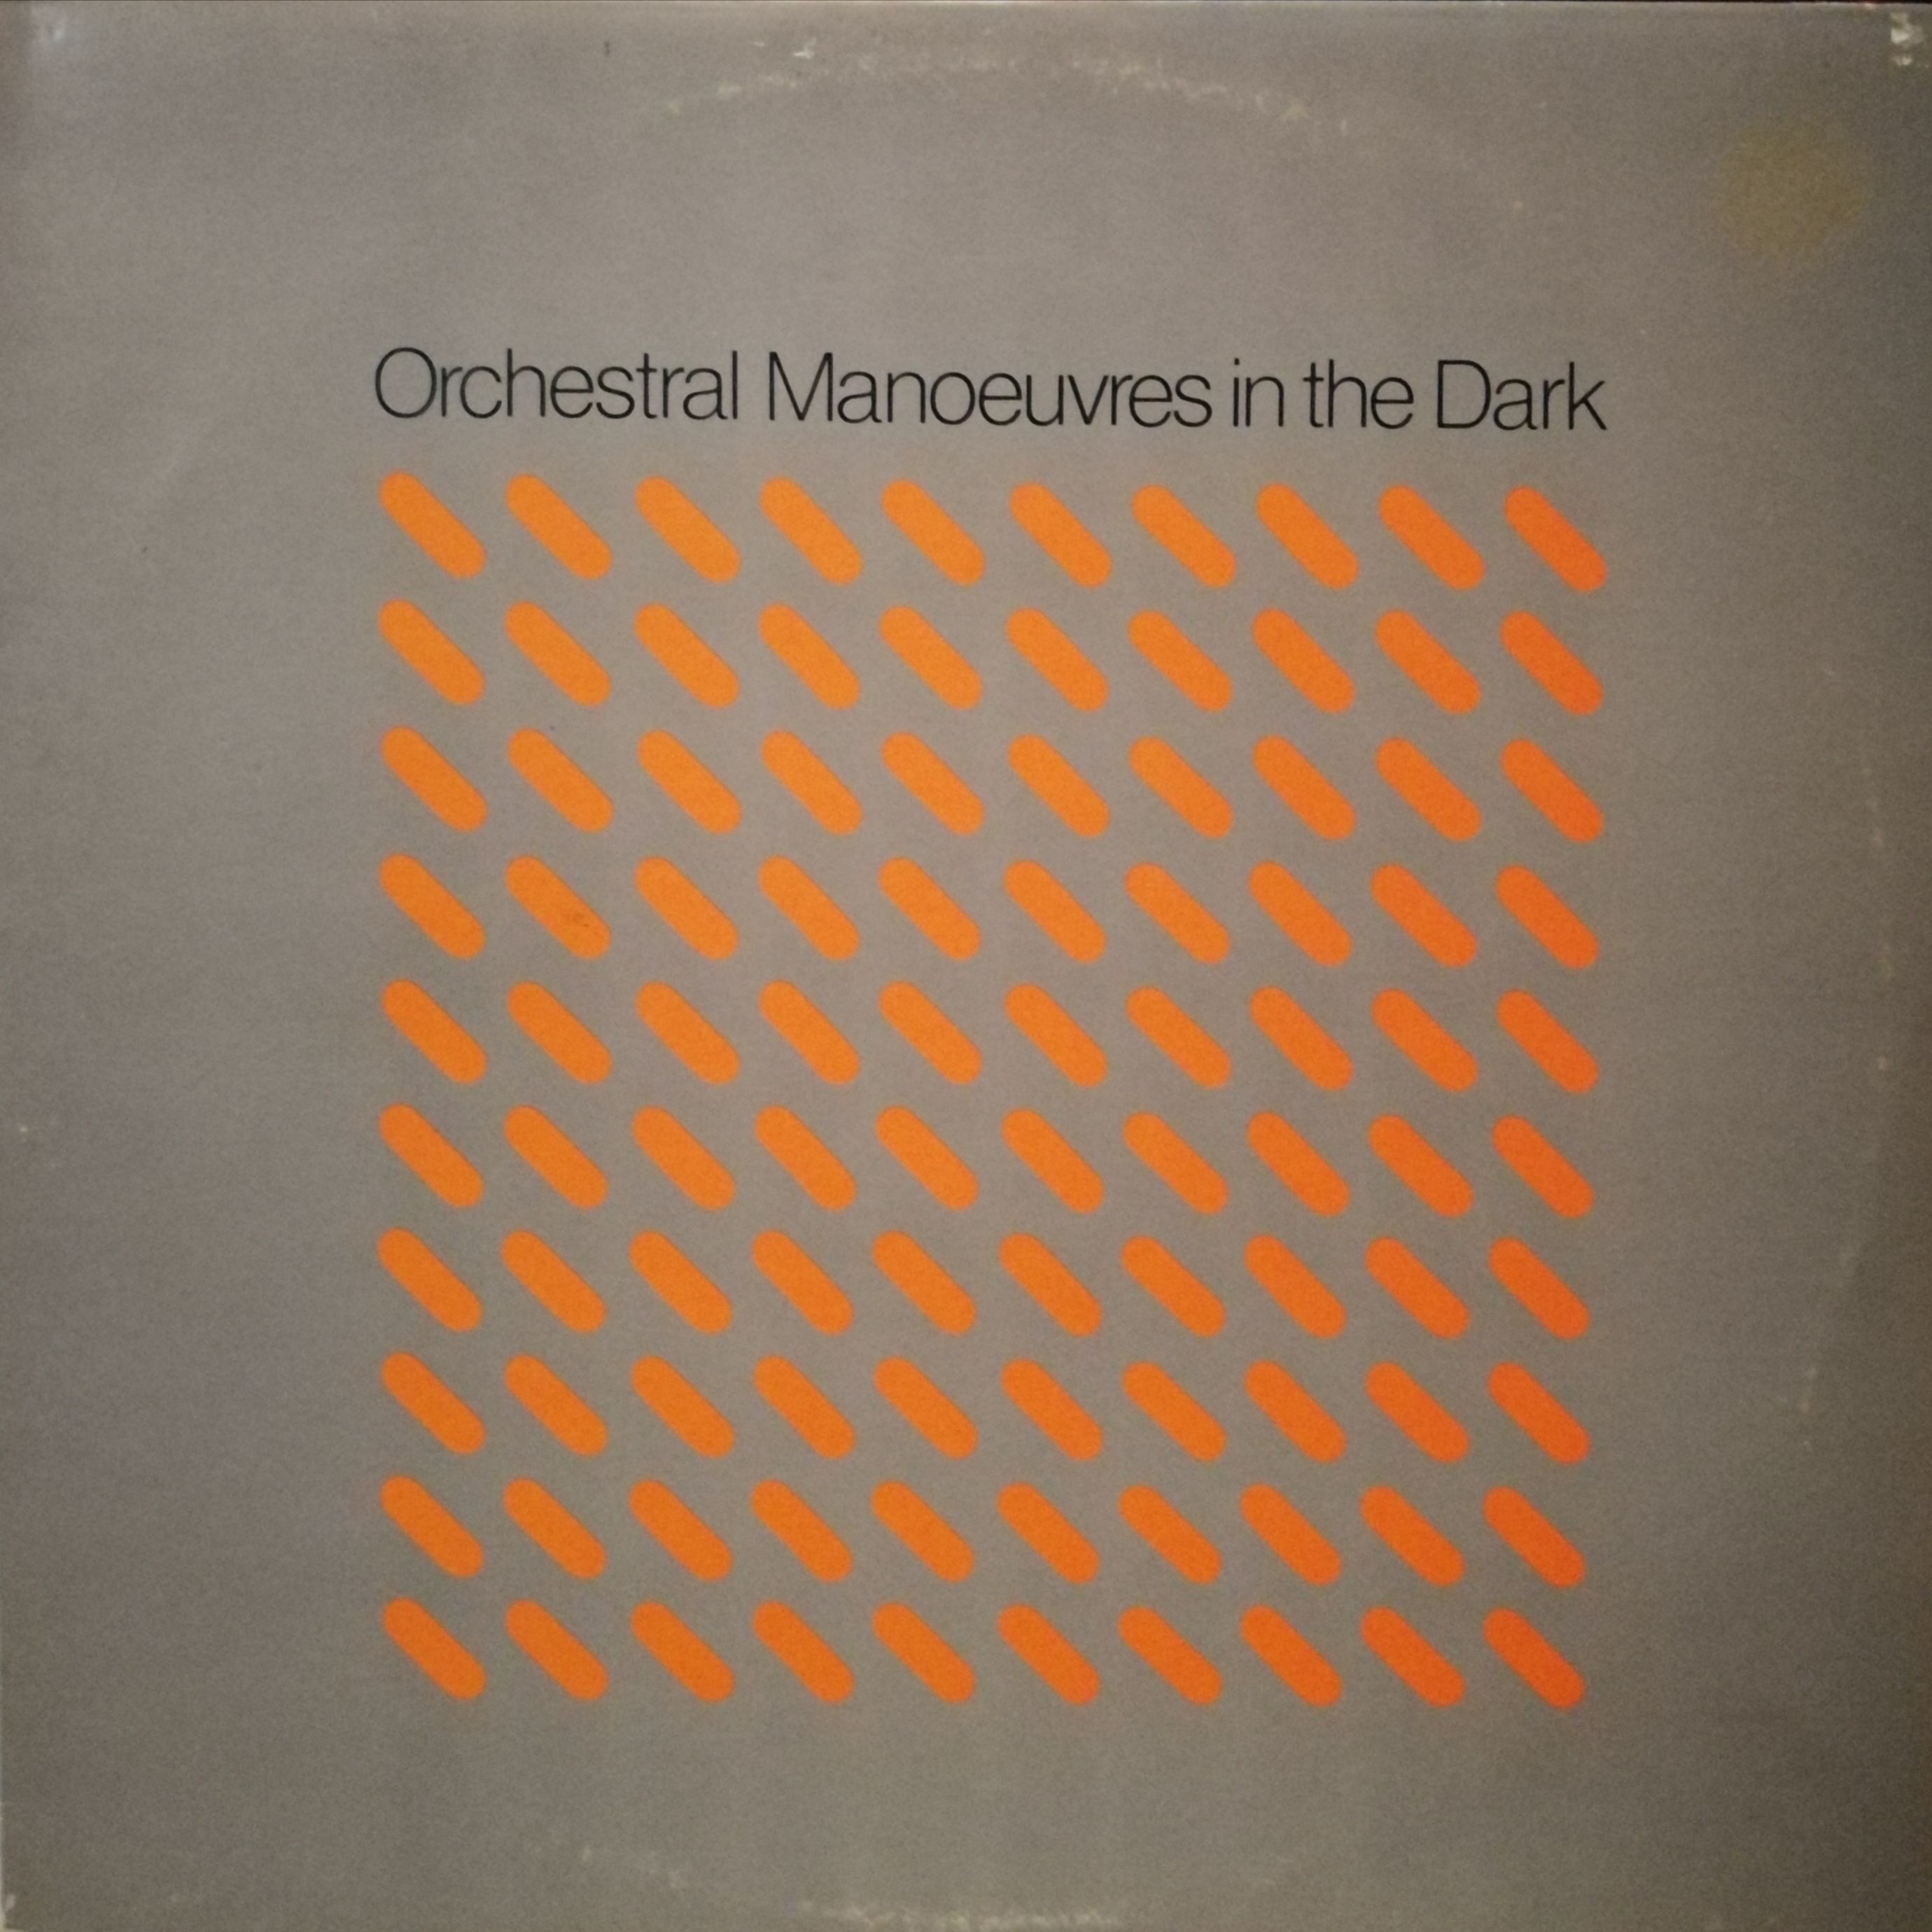 Orchestral Manoeuvres in the Dark Orchestral Manoeuvres in the Dark LP undefined